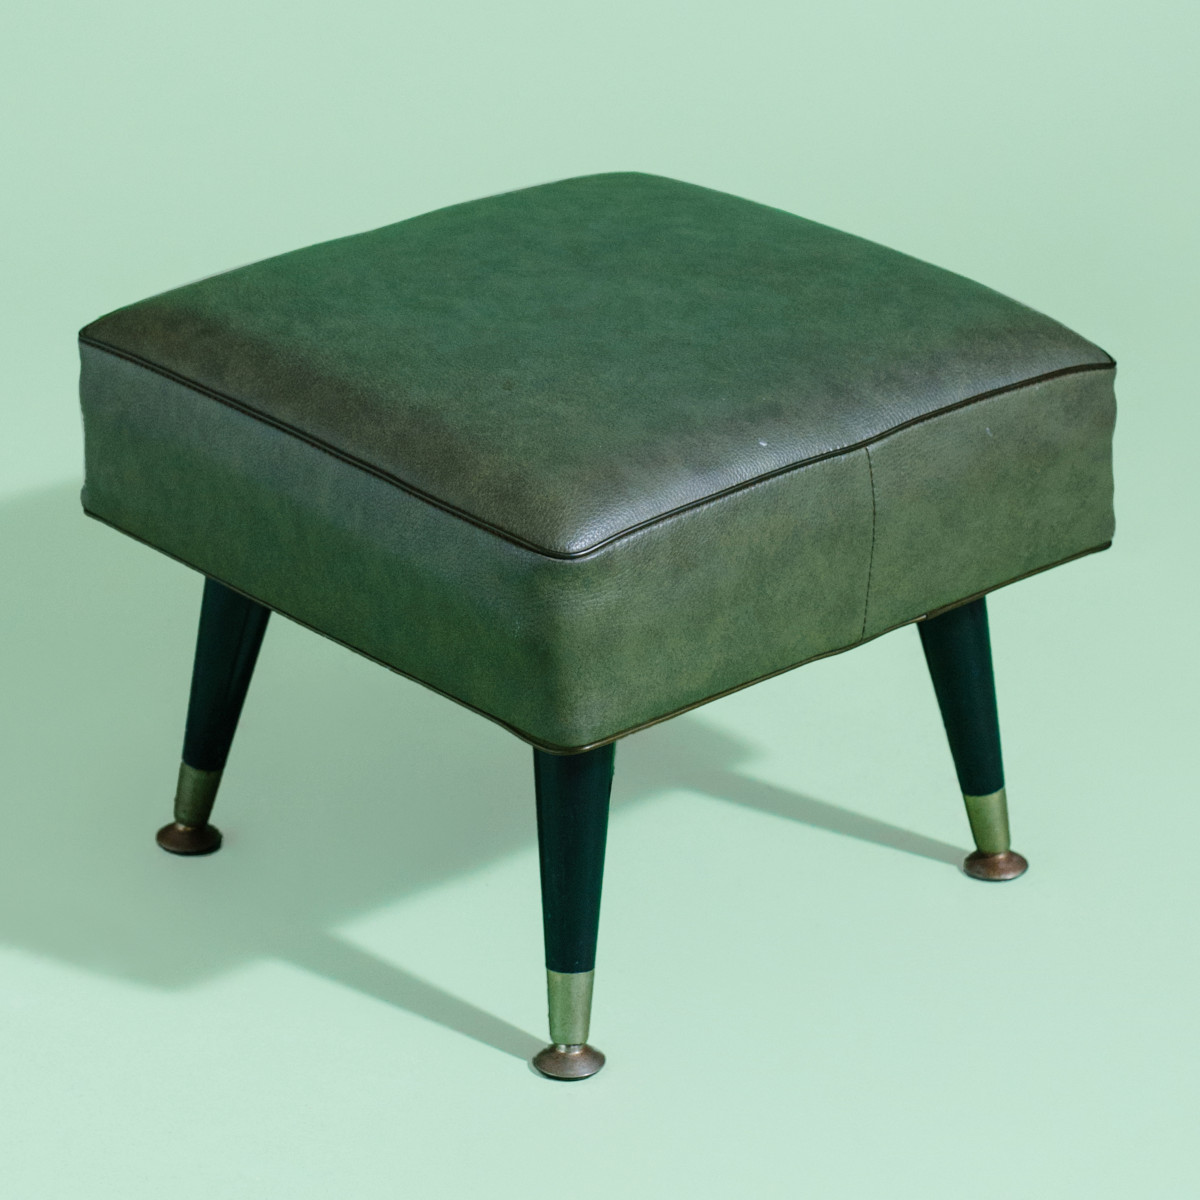 LN047- Run Forrest Square Green Footstool-1